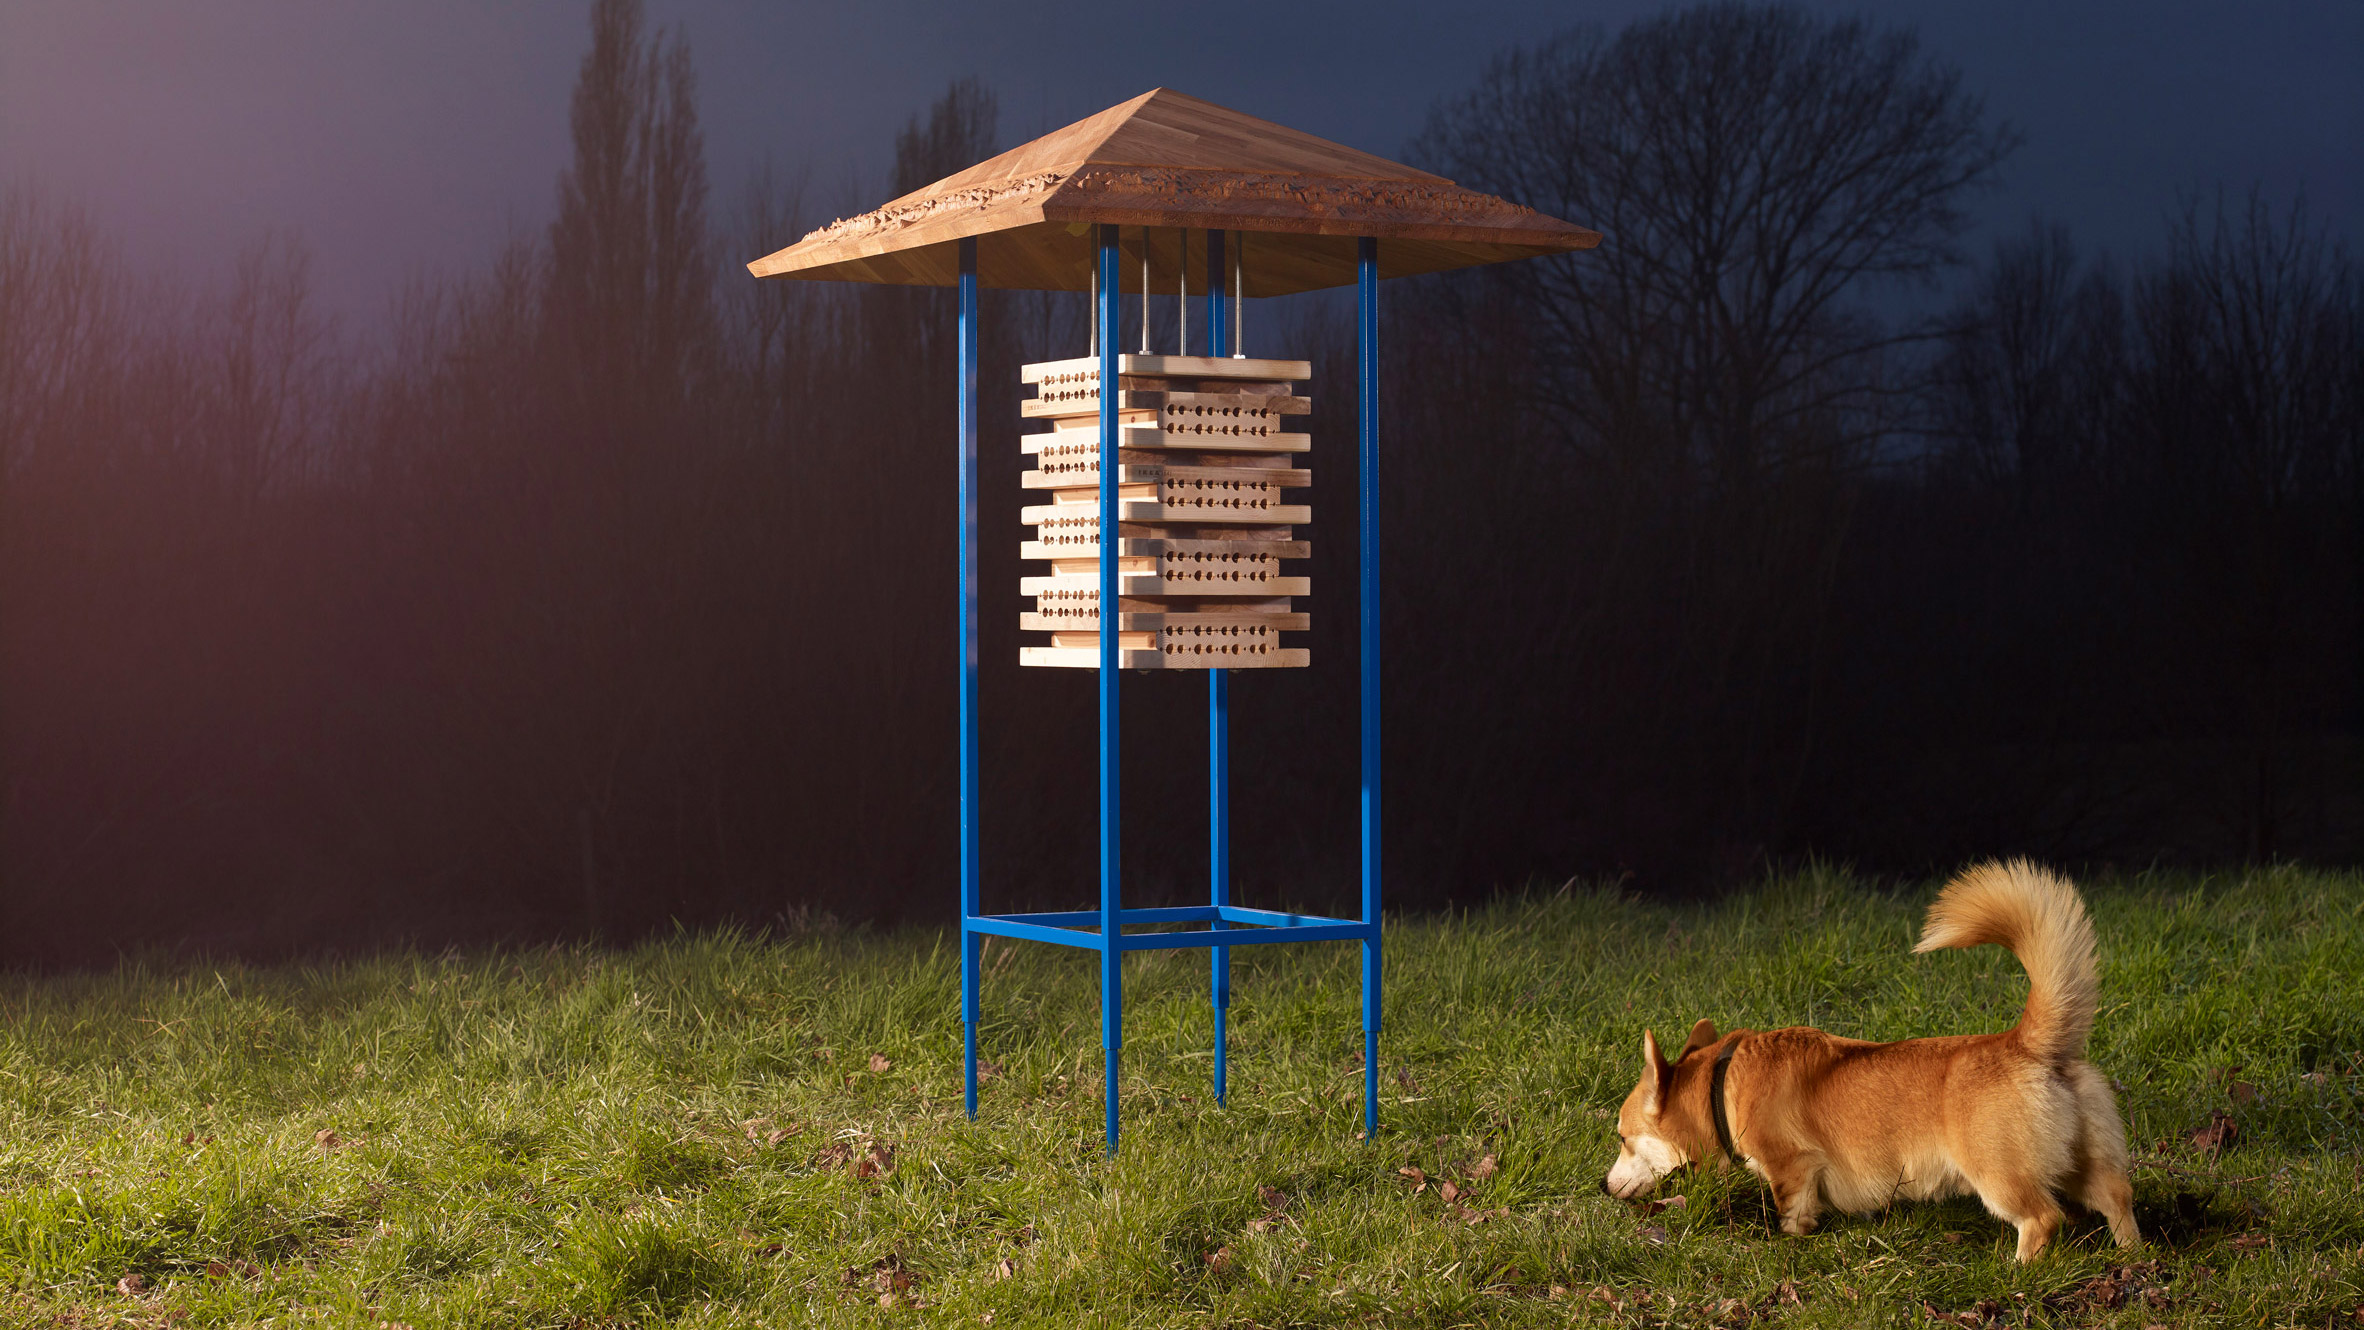 dezeen.com - Rima Sabina Aouf - IKEA upcycles furniture into colourful Wildhomes for Wildlife